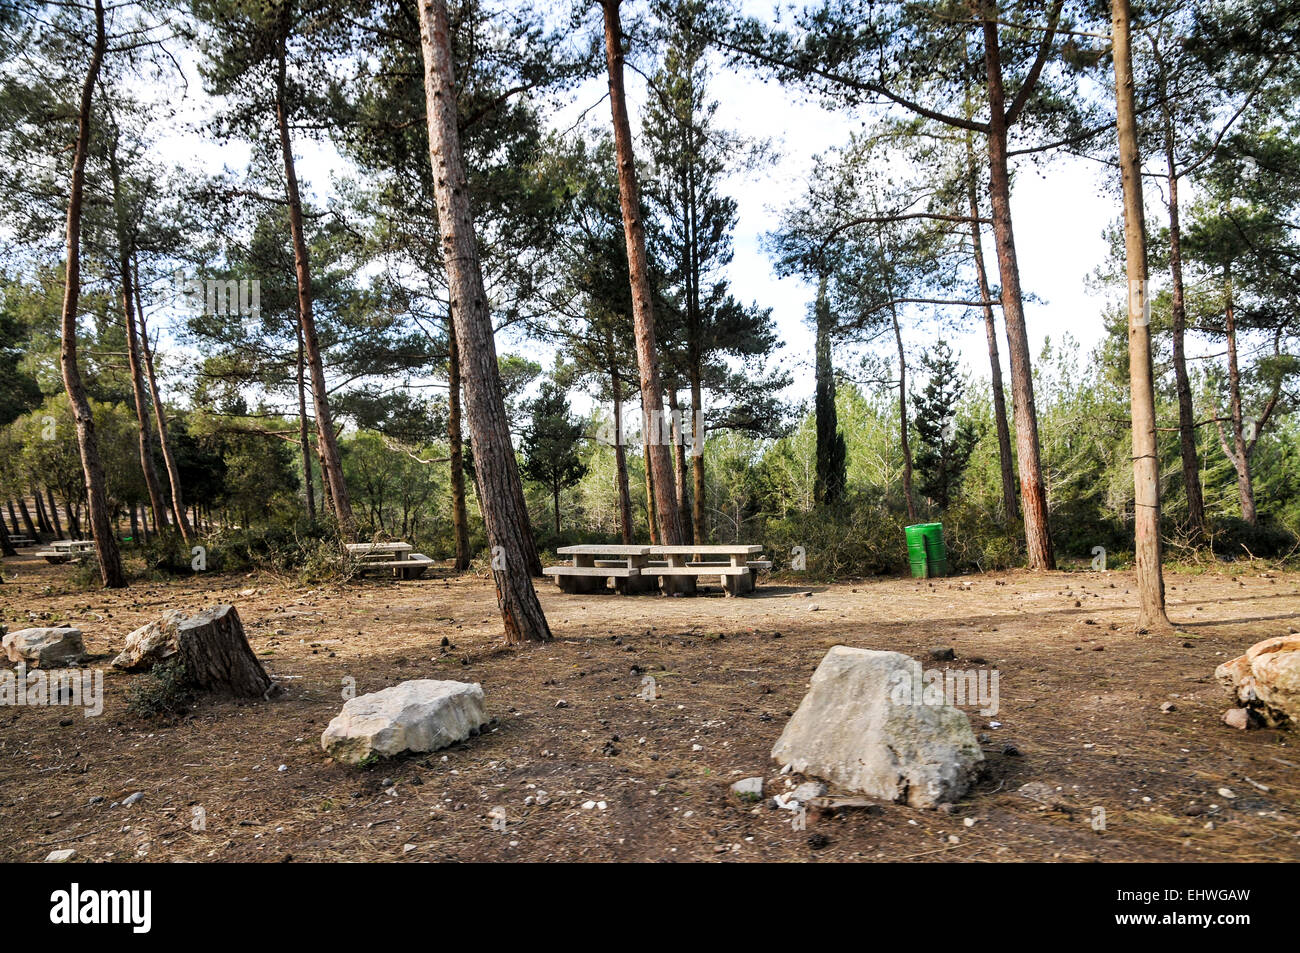 Public picnic site in the Carmel Forest, Israel - Stock Image